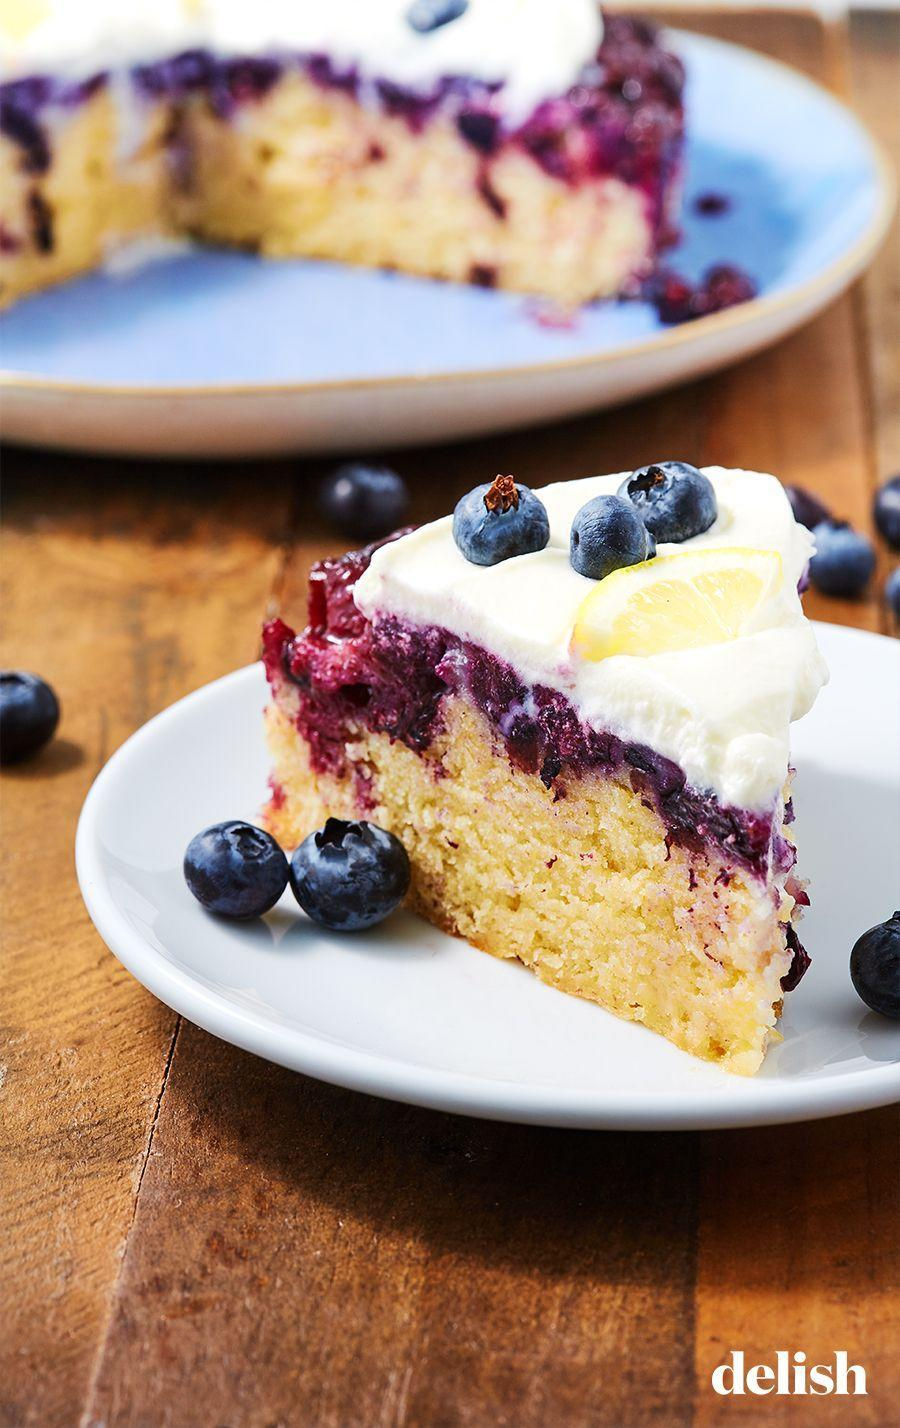 """<p>Why should pineapple have all the fun?</p><p>Get the recipe from <a href=""""https://www.delish.com/cooking/a26963418/blueberry-lemon-upside-down-cake-recipe/"""" rel=""""nofollow noopener"""" target=""""_blank"""" data-ylk=""""slk:Delish"""" class=""""link rapid-noclick-resp"""">Delish</a>.</p>"""